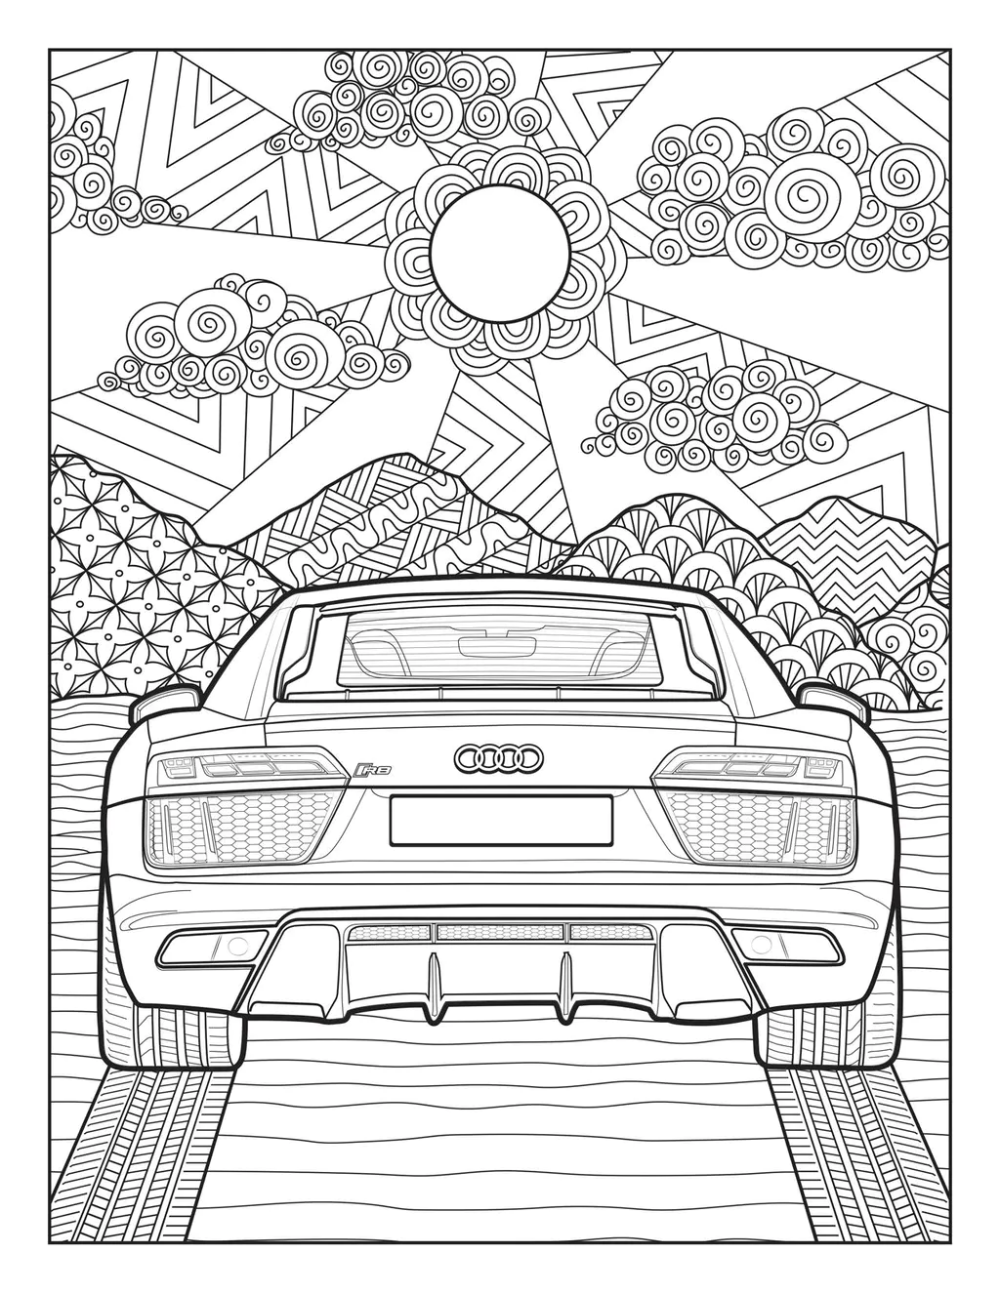 Free Coloring Pages For Kids Or Adults Who Still Have Fun Free Coloring Pages Coloring Books Coloring Pages For Kids [ 1293 x 1000 Pixel ]